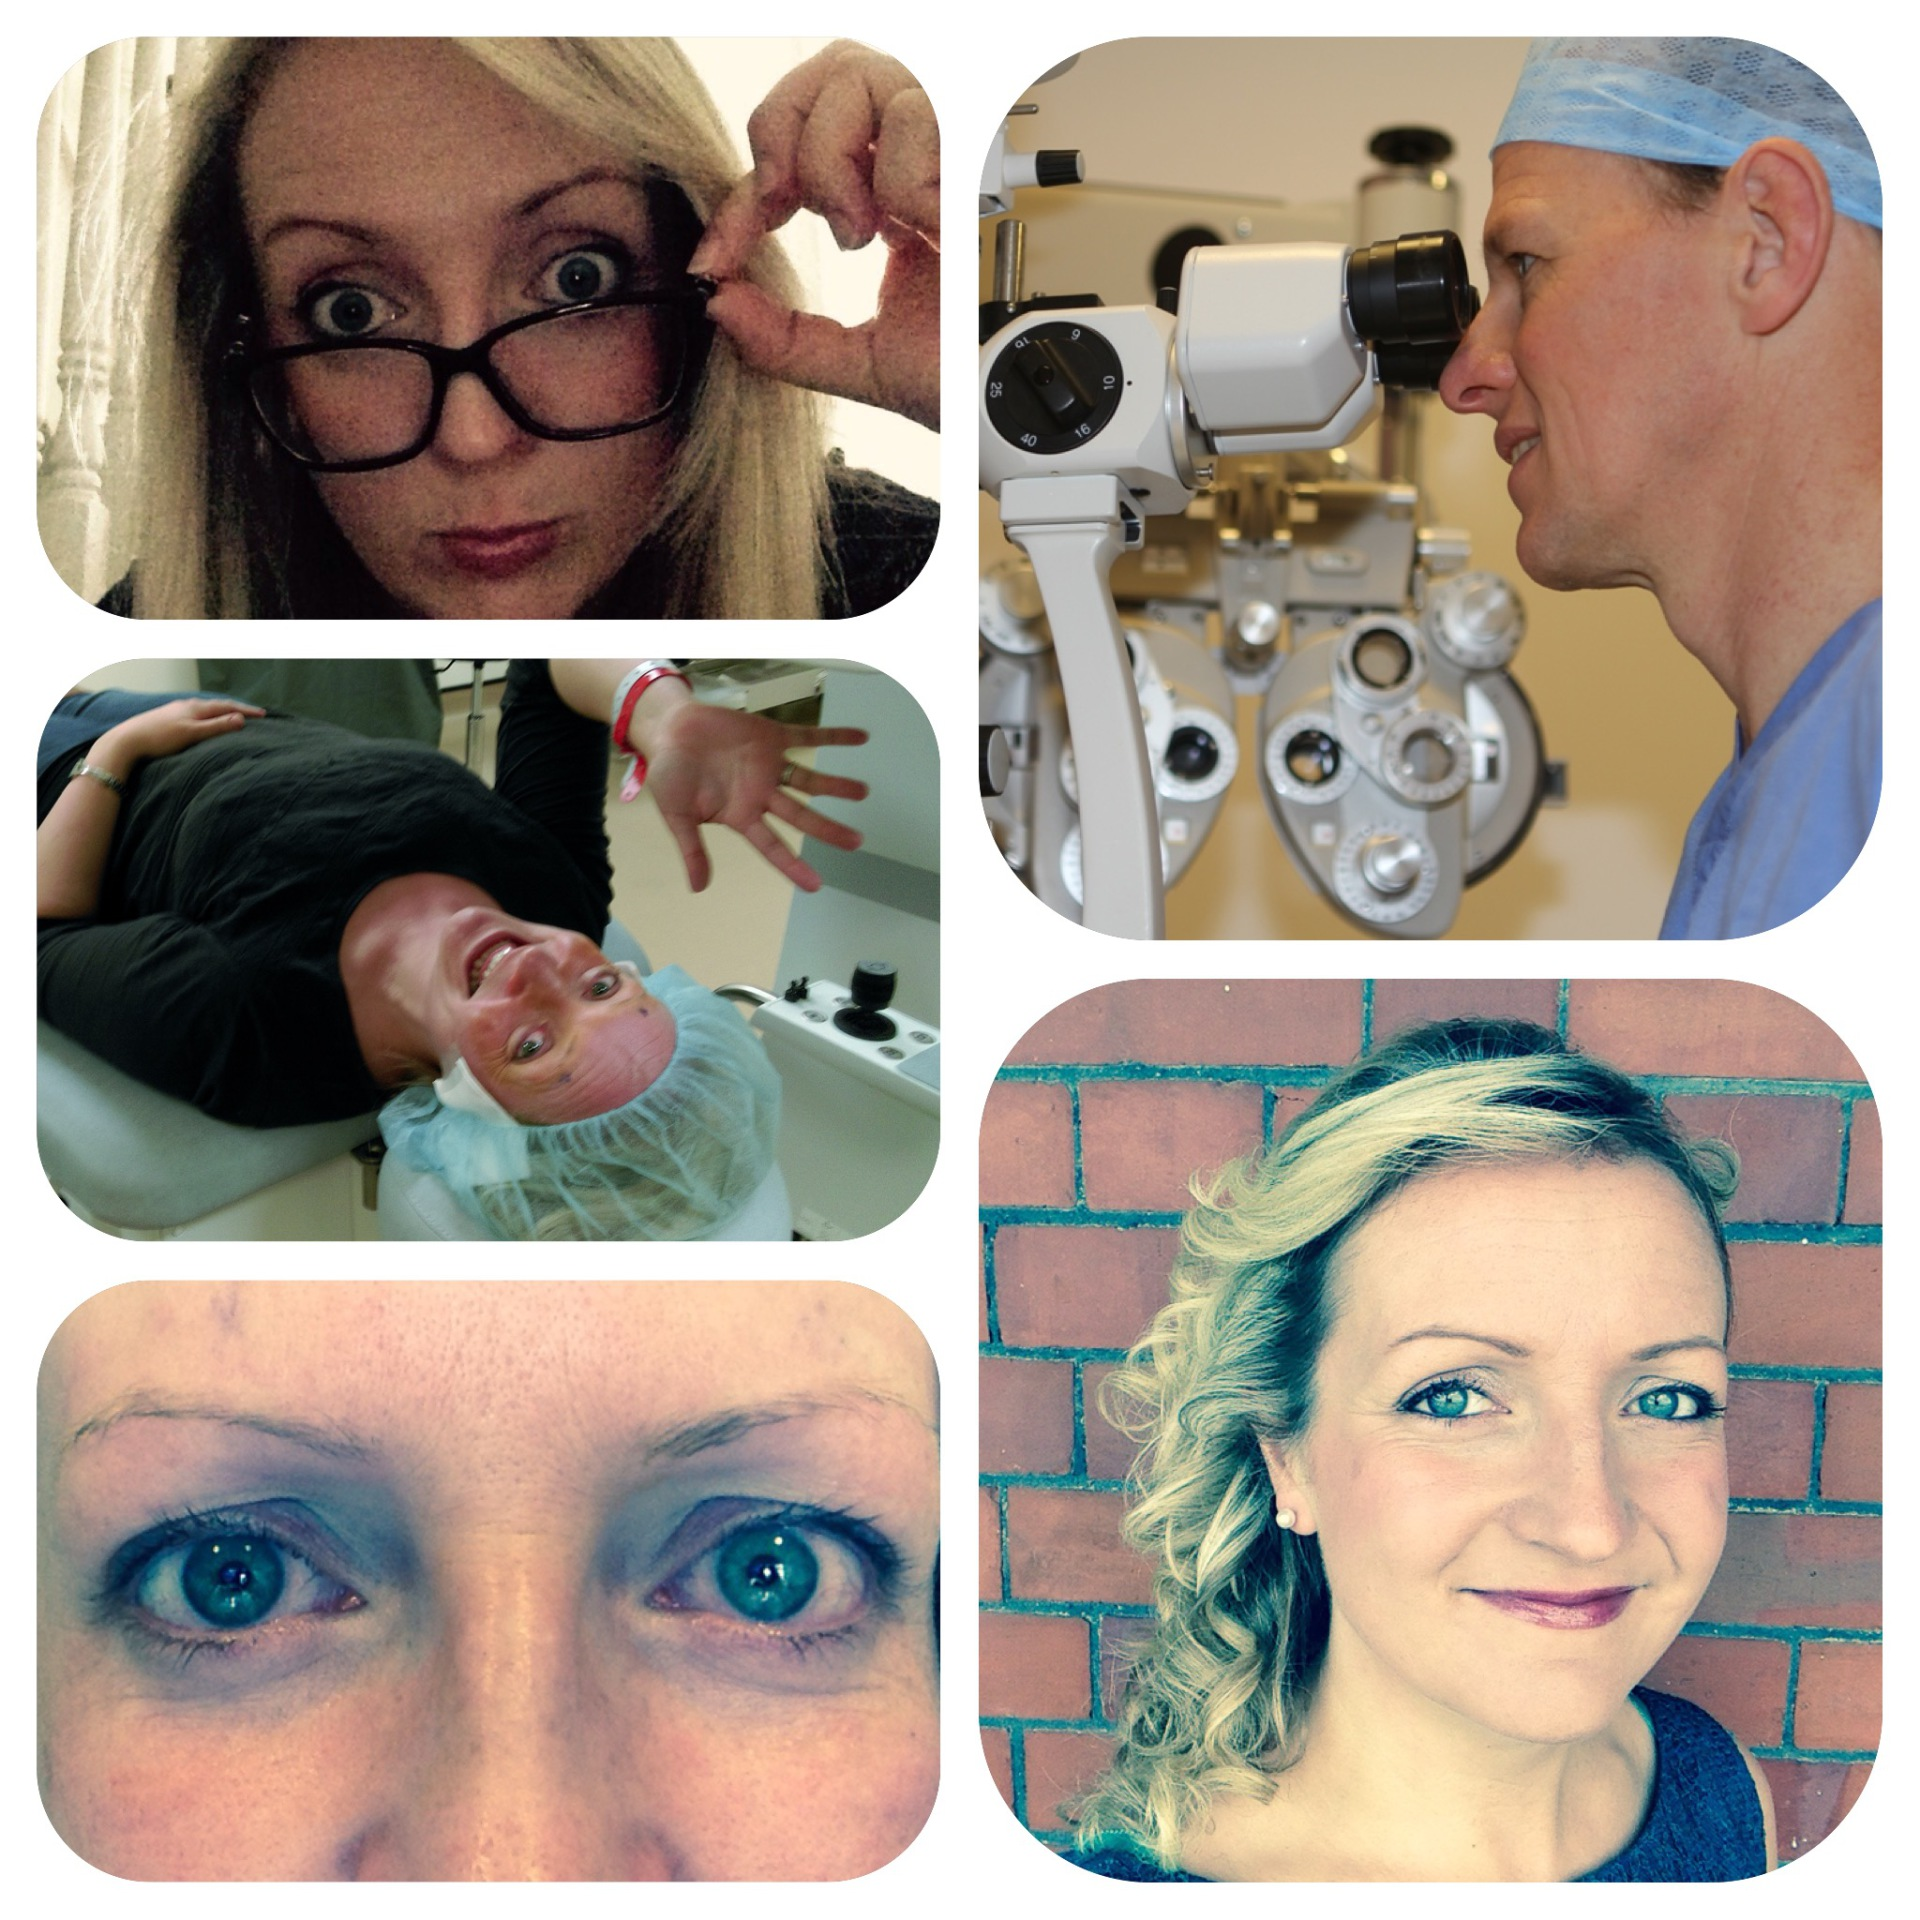 An honest account of Eye Laser Surgery